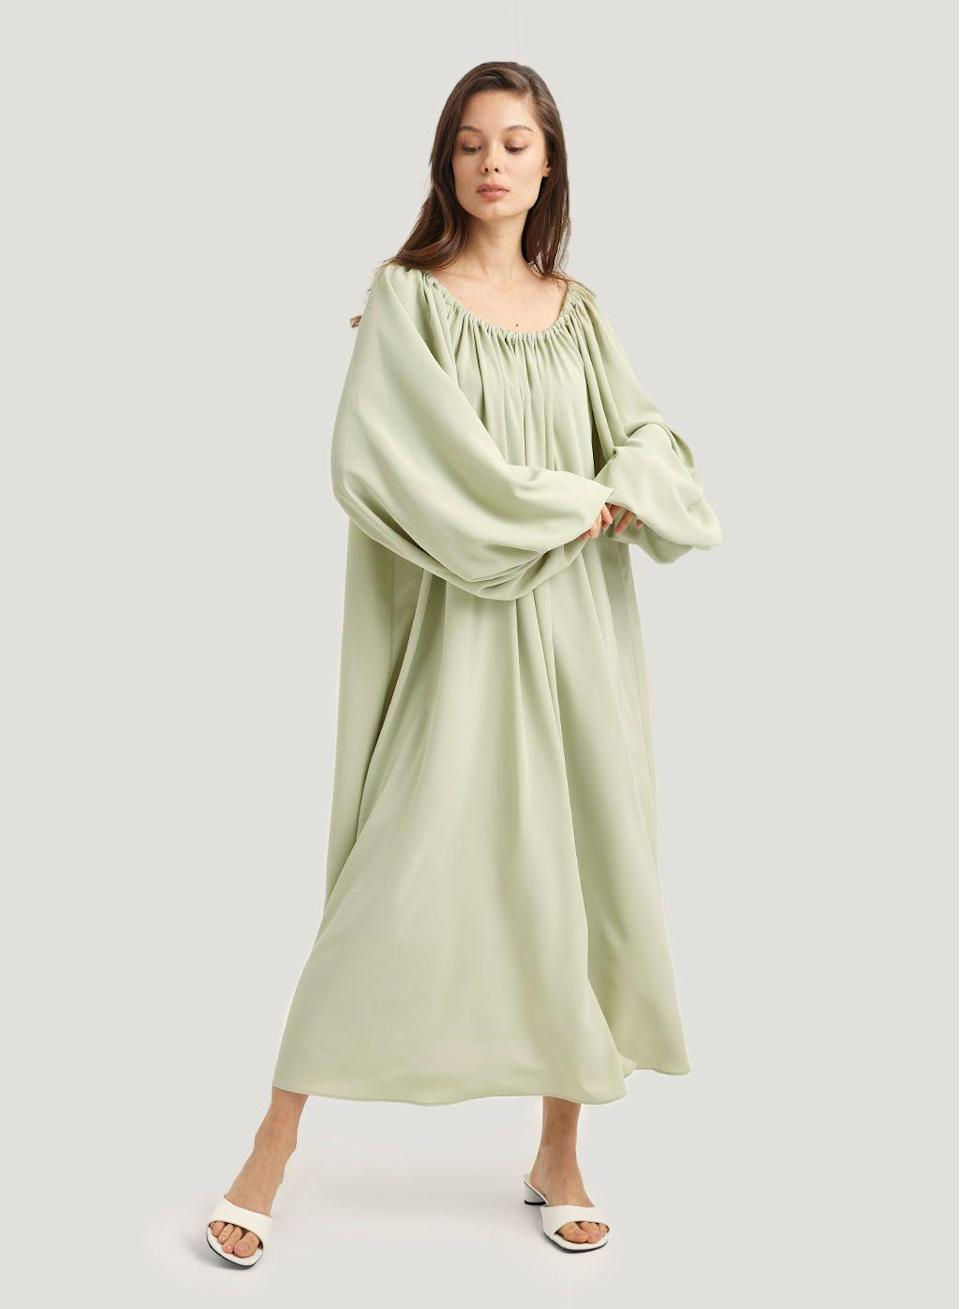 "<p><strong>Nap Loungewear</strong></p><p>naploungewear.com</p><p><strong>$98.00</strong></p><p><a href=""https://naploungewear.com/product/gypsy-puff-sleeve-dress/"" rel=""nofollow noopener"" target=""_blank"" data-ylk=""slk:shop it"" class=""link rapid-noclick-resp"">shop it</a></p><p>Looking for an effortless dress to add to your summer rotation? The billowing silhouette, puff sleeves, and ruched neckline have us feeling like we could do just about anything in this. Keep it simple with a pair of house slippers or dress it up with a elevated mule. </p>"